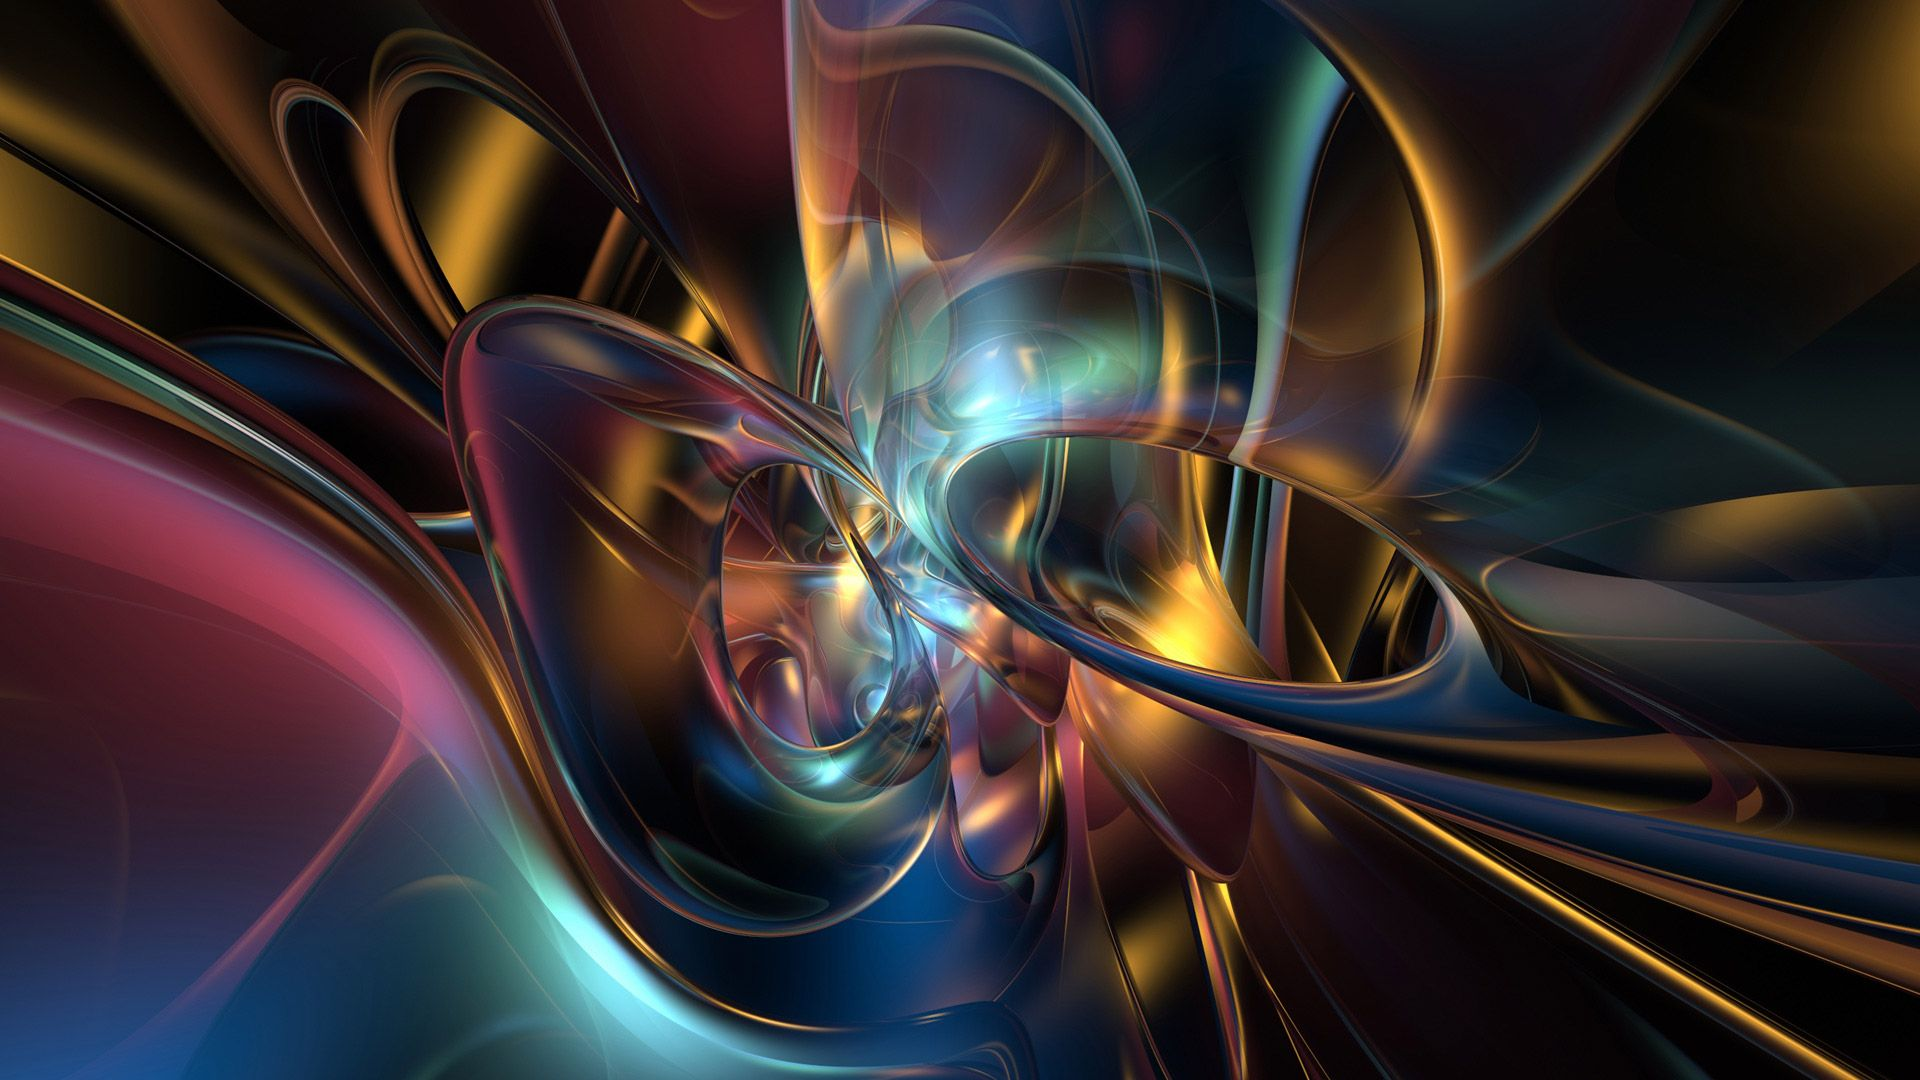 Hd Wallpapers 1080p Abstract Abstract Art Wallpaper Abstract Abstract Wallpaper